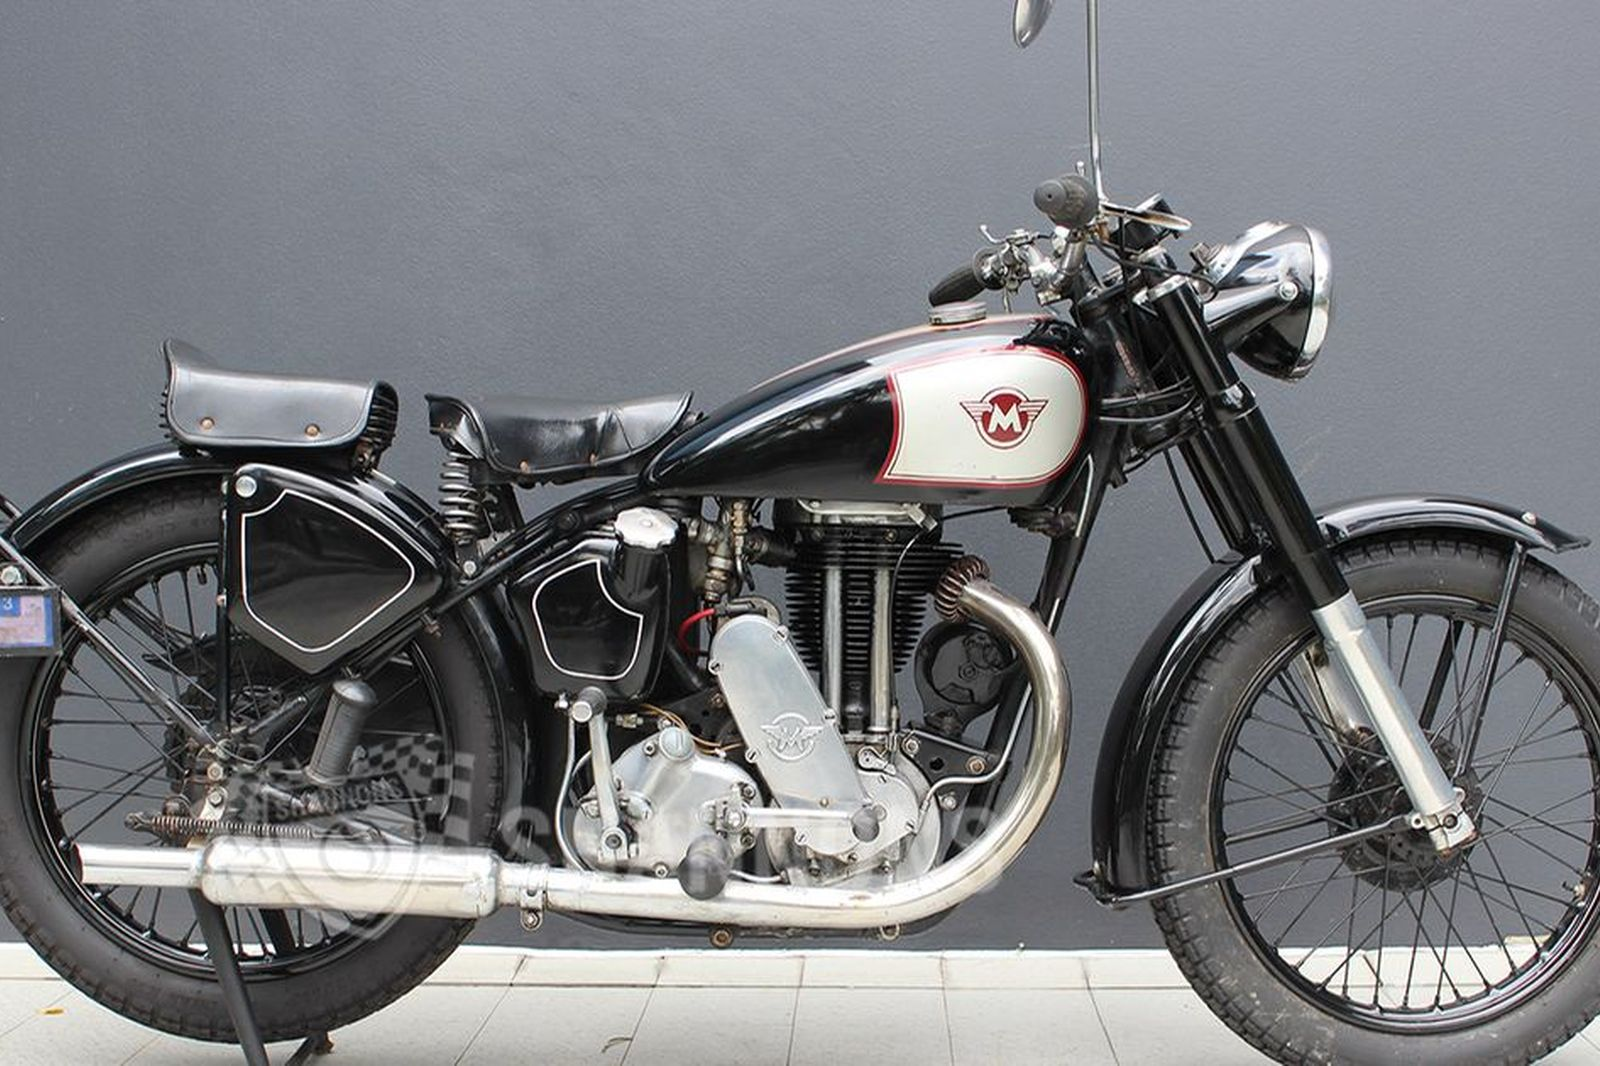 Matchless G3L 350cc motorcycle